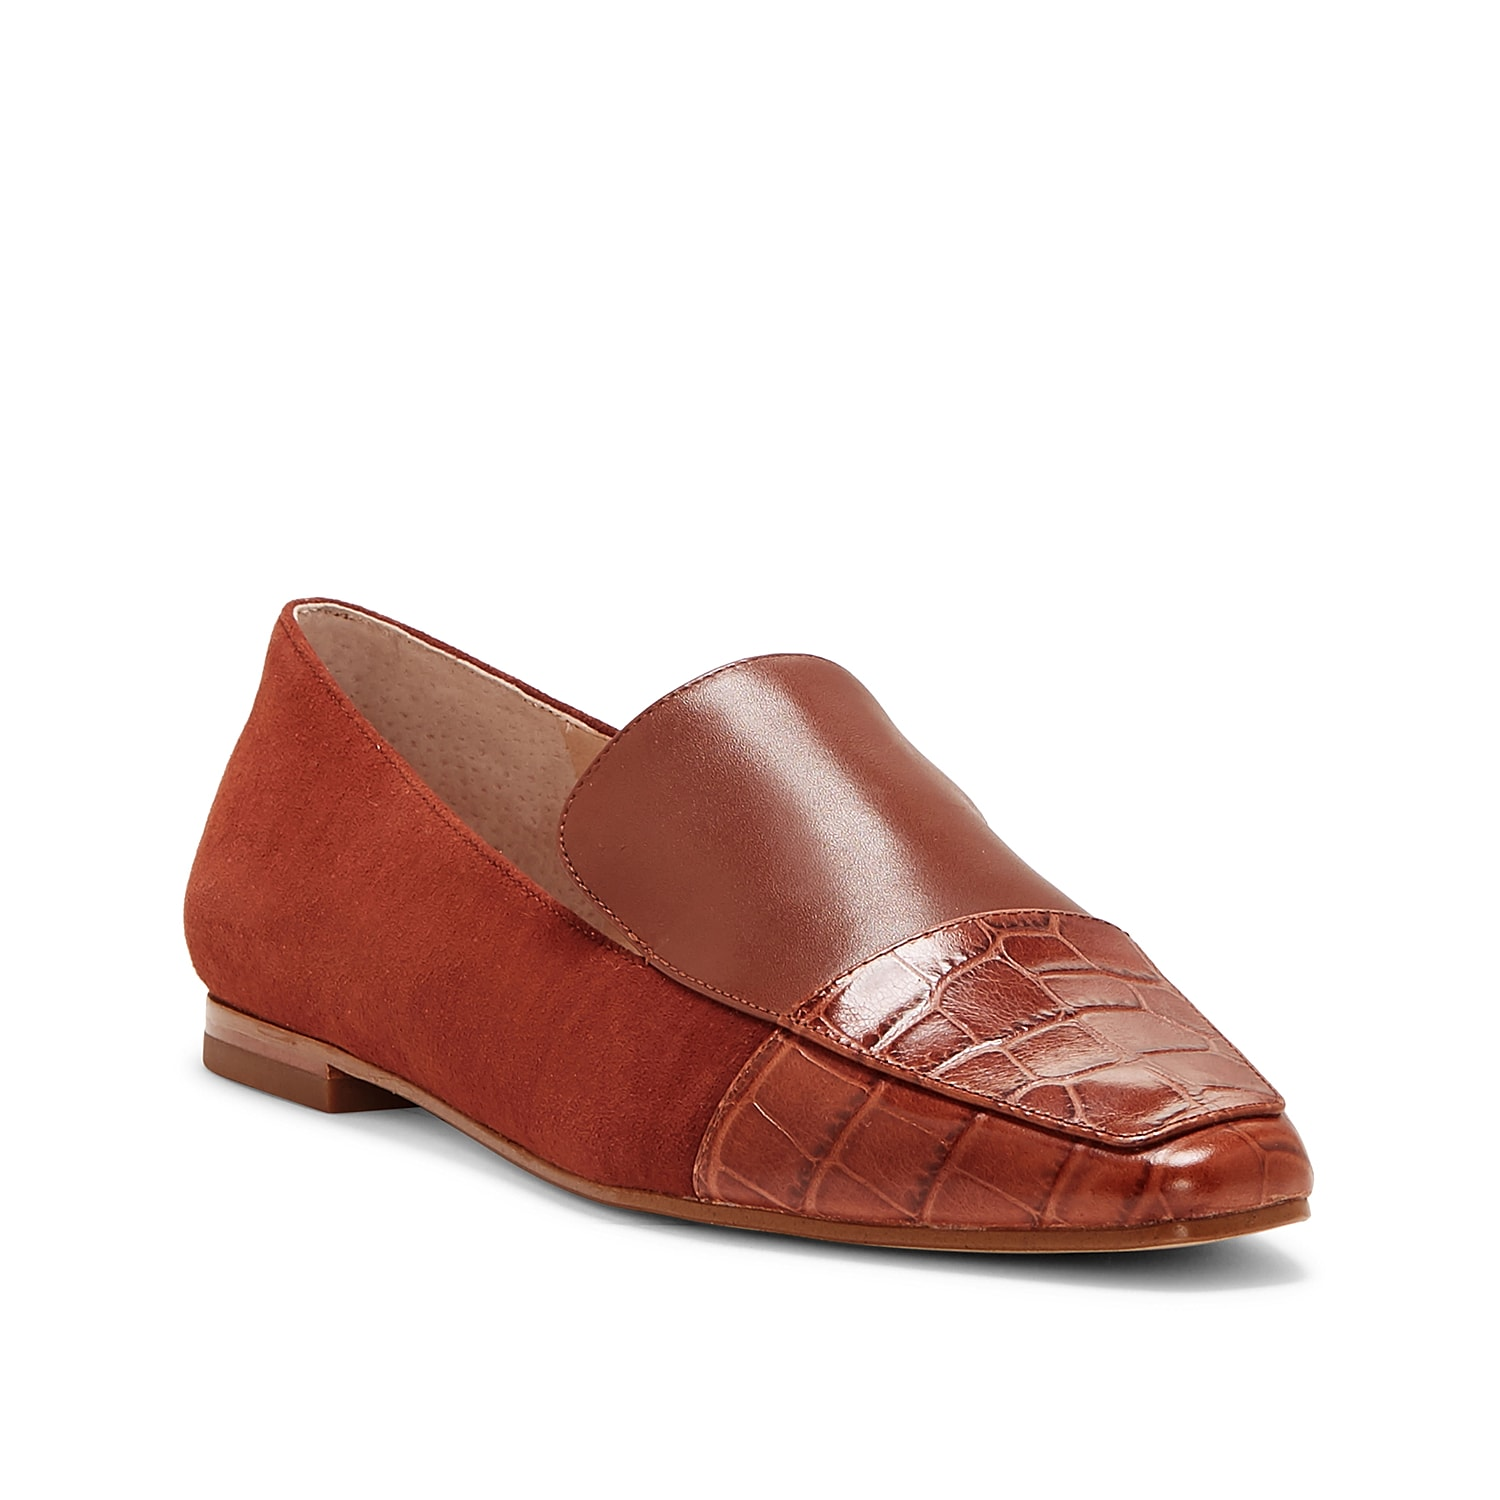 Tailored looks will get a modern update with the Blith loafer from Louise Et Cie. A tapered croc-print square toe sets this mixed material slip-on apart from the rest.